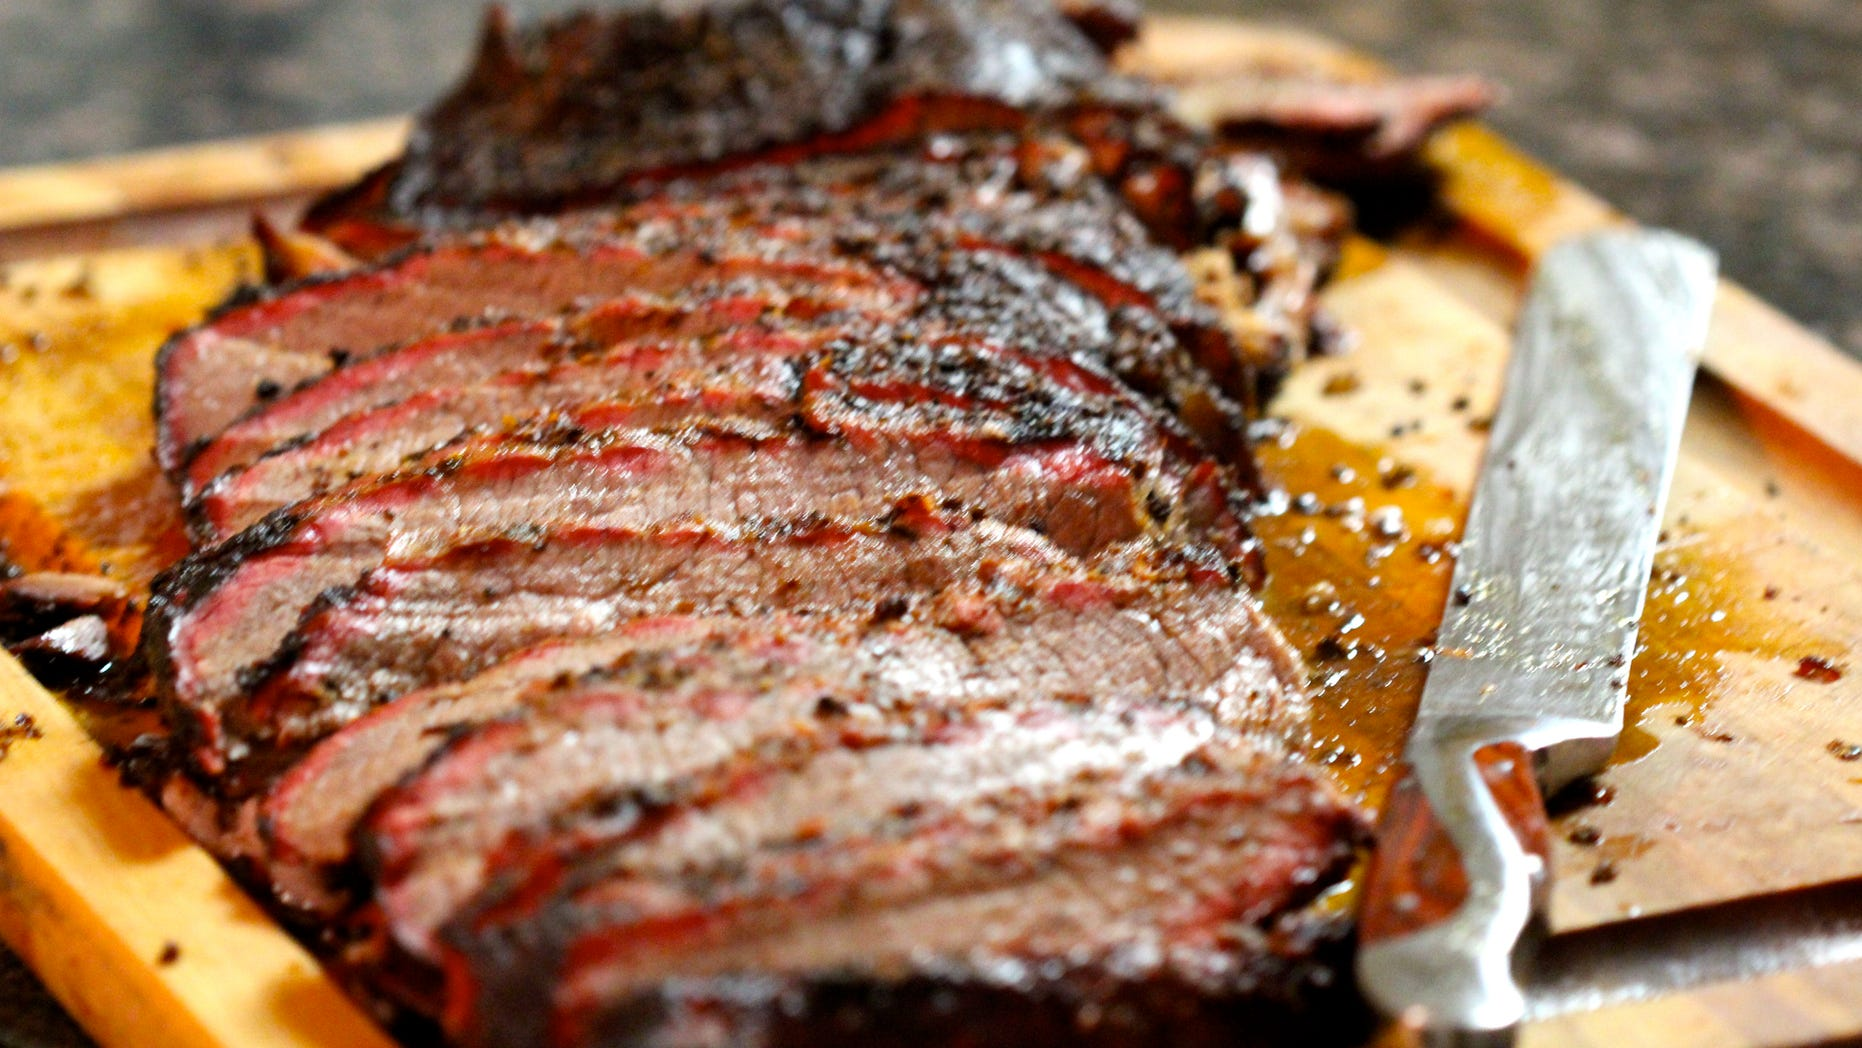 Critics were displeased with Kevin Biegel comparing his dish to a real brisket, like the one pictured above.